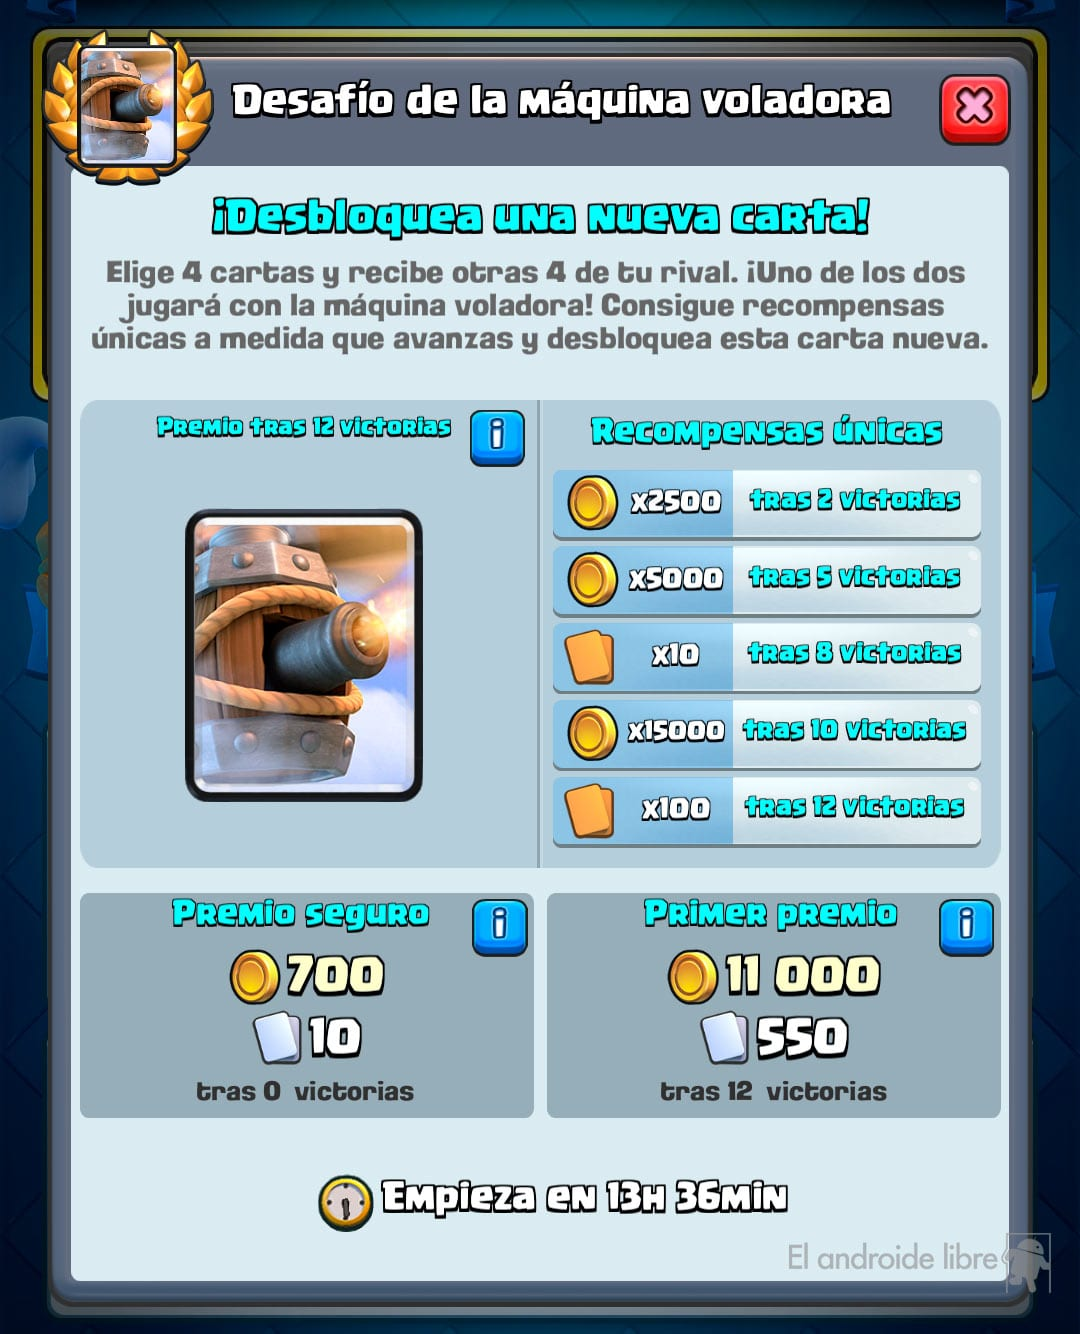 Try the new Clash Royale card with your Flying Machine challenge